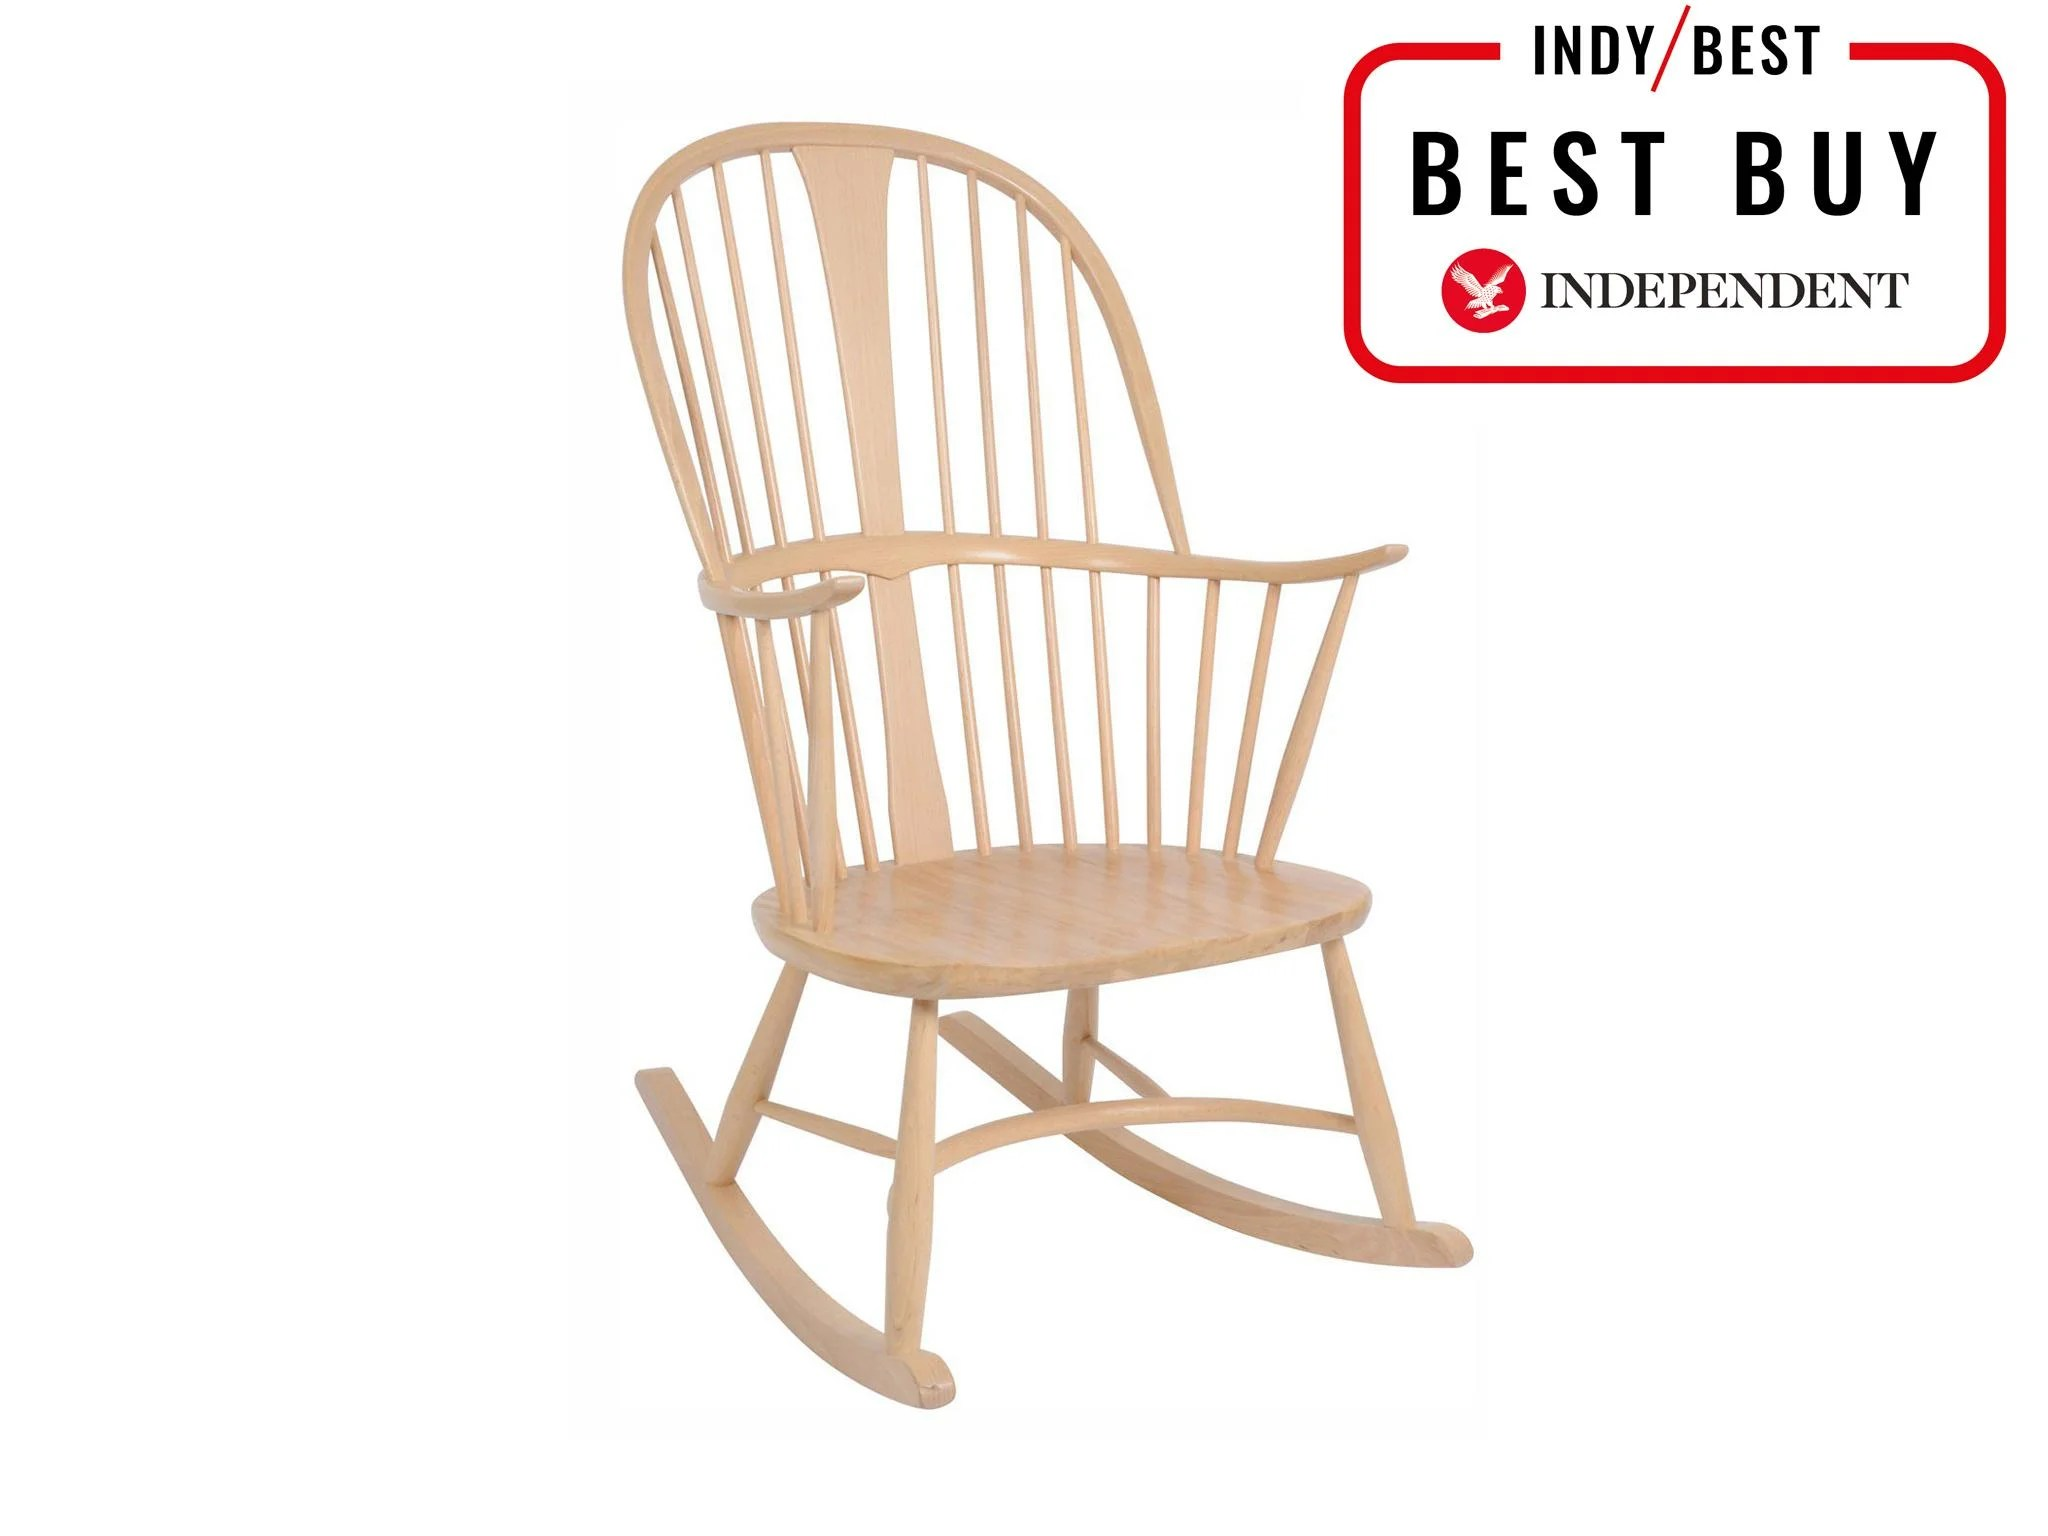 what is a rocking chair papasan accessories 10 best chairs the independent with making version of traditional british windsor that could be easily reproduced to meet post war demand his chairmakers